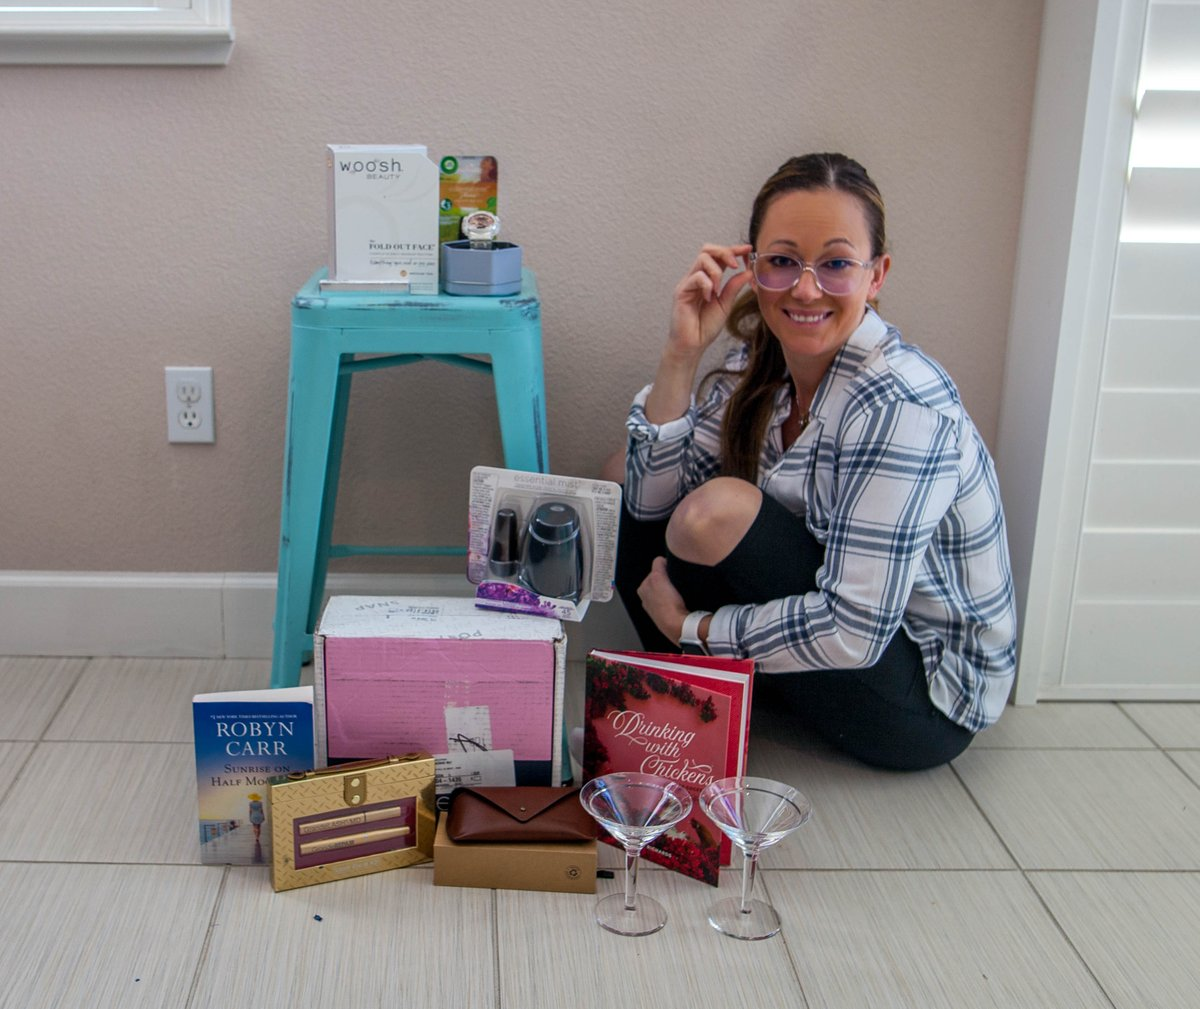 #ad Mother's Day Gift Guide -->https://theheartofdani.com/2020/05/05/what-i-want-for-mothers-day-gift-ideas-promo-codes/… <-- featuring #GiftsForSuperMomBBxx #AirWickUS  #EBDfamily #wooshbeauty #HarlequinBooks #BookClubbish #gshockwomen #GSHOCKRoseGoldpic.twitter.com/pWiNIMcI7P